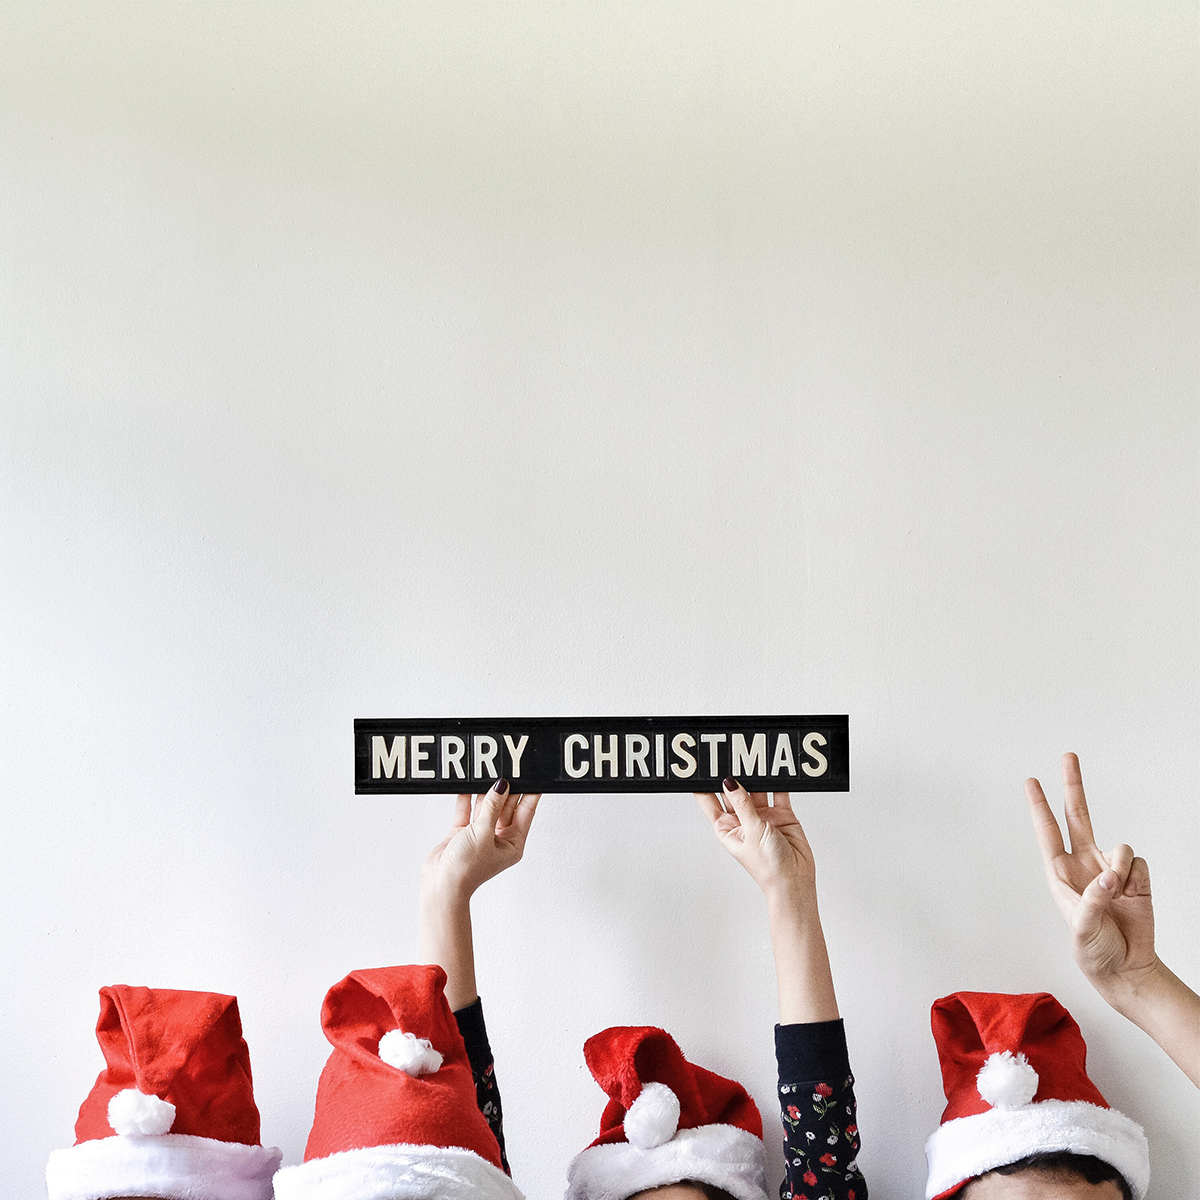 Tops of four heads with Santa hats and hands holding up Merry Christmas sign